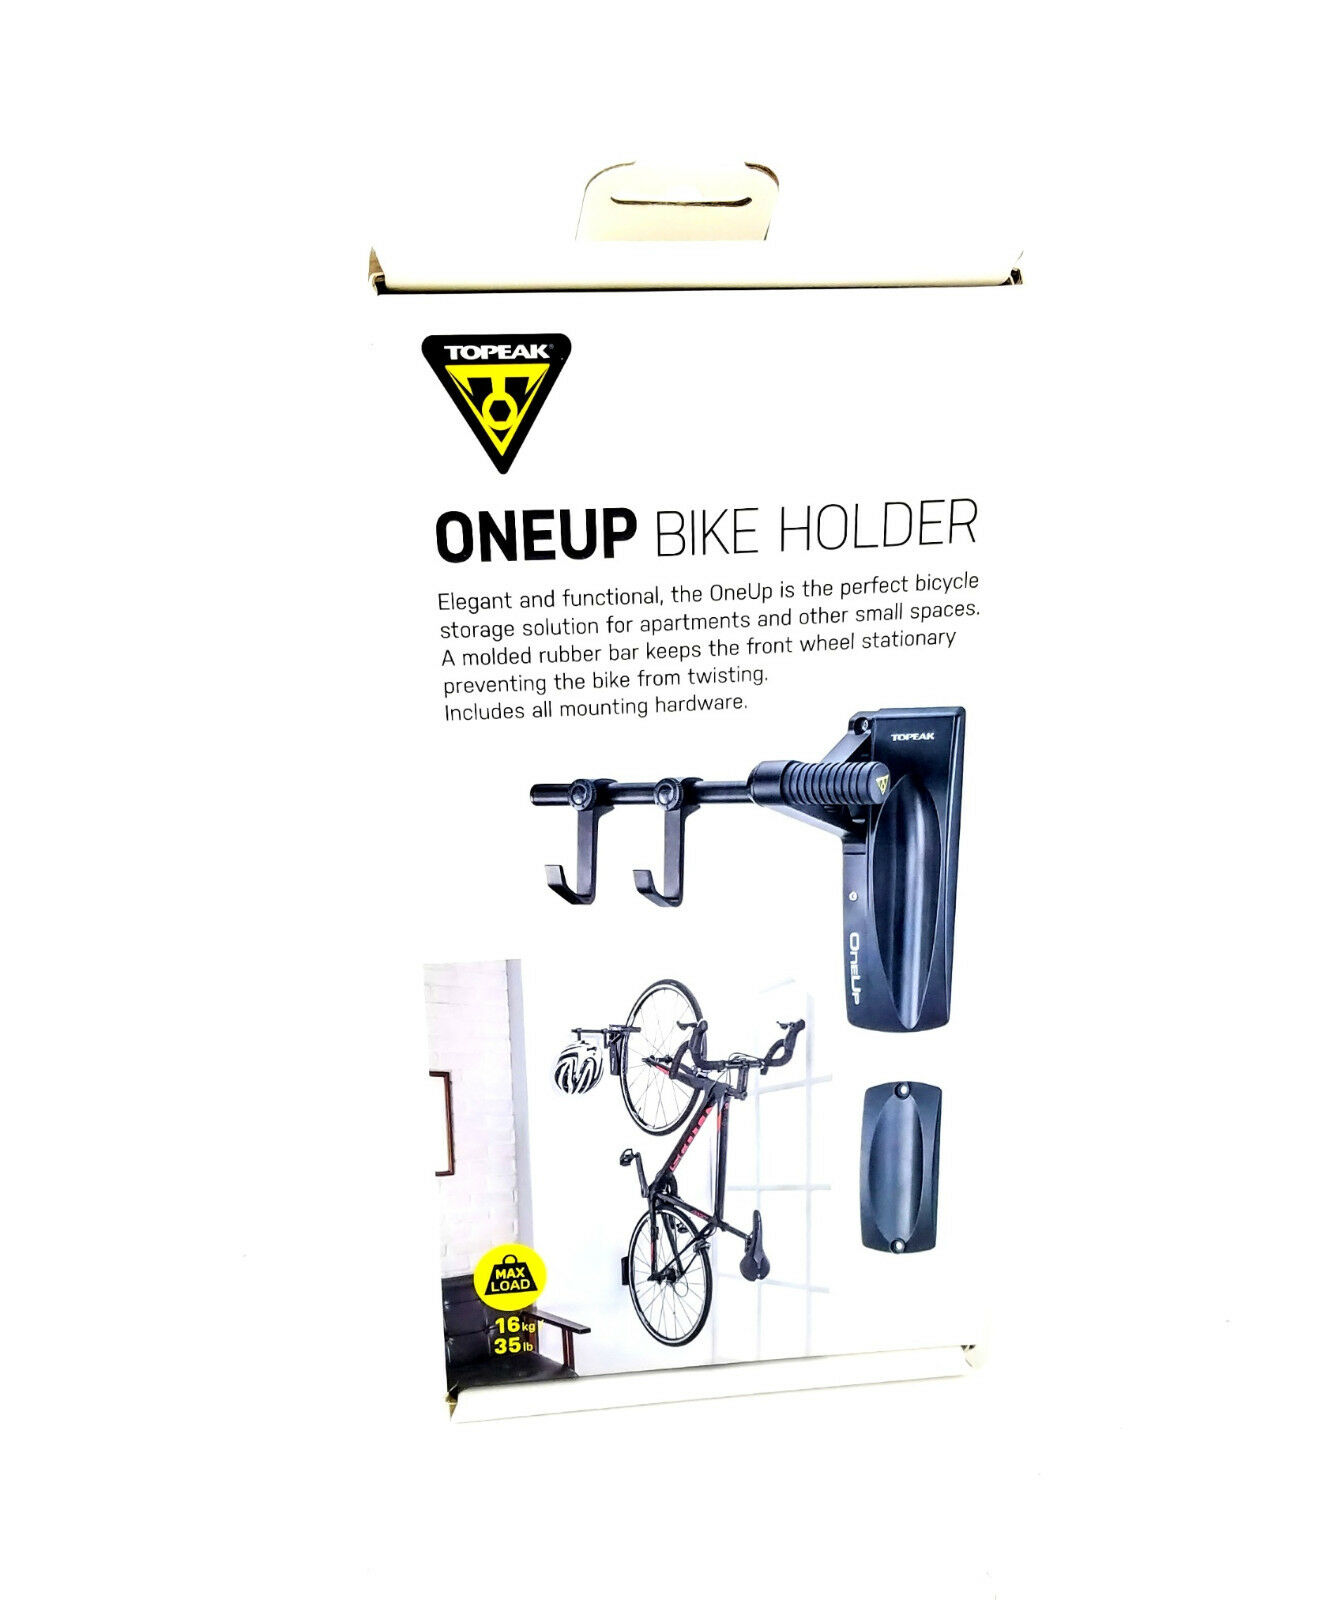 Topeak OneUp Wall-Mount Bike Holder - Single-Bicycle Storage  System  waiting for you